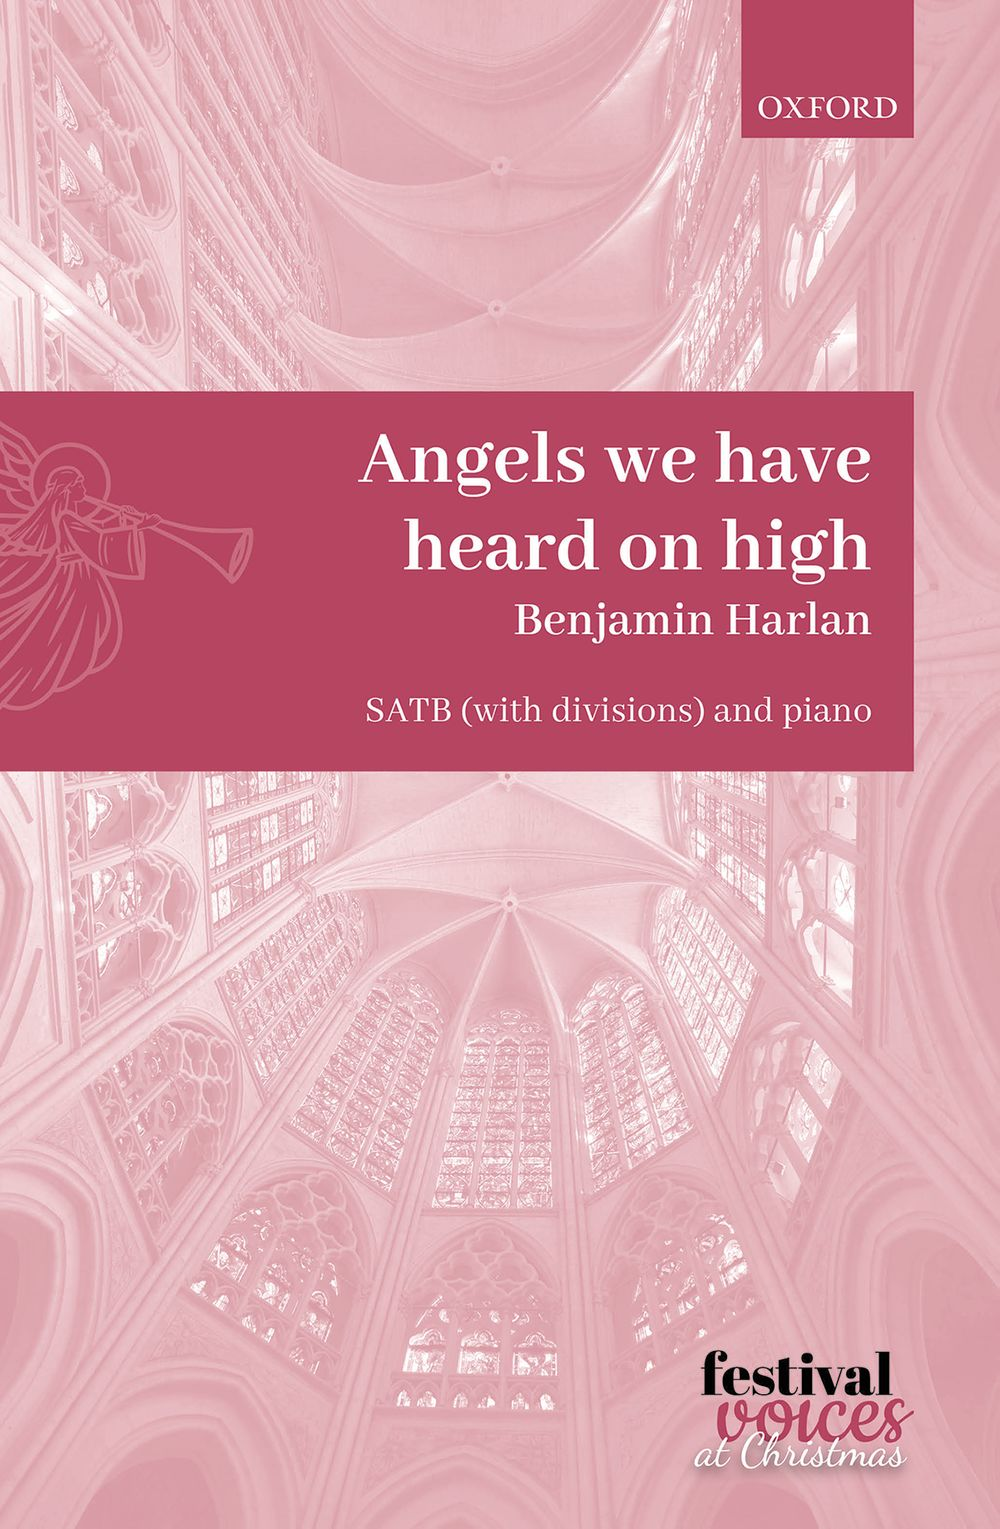 Benjamin Harlan: Angels we have heard on high: SATB: Vocal Score